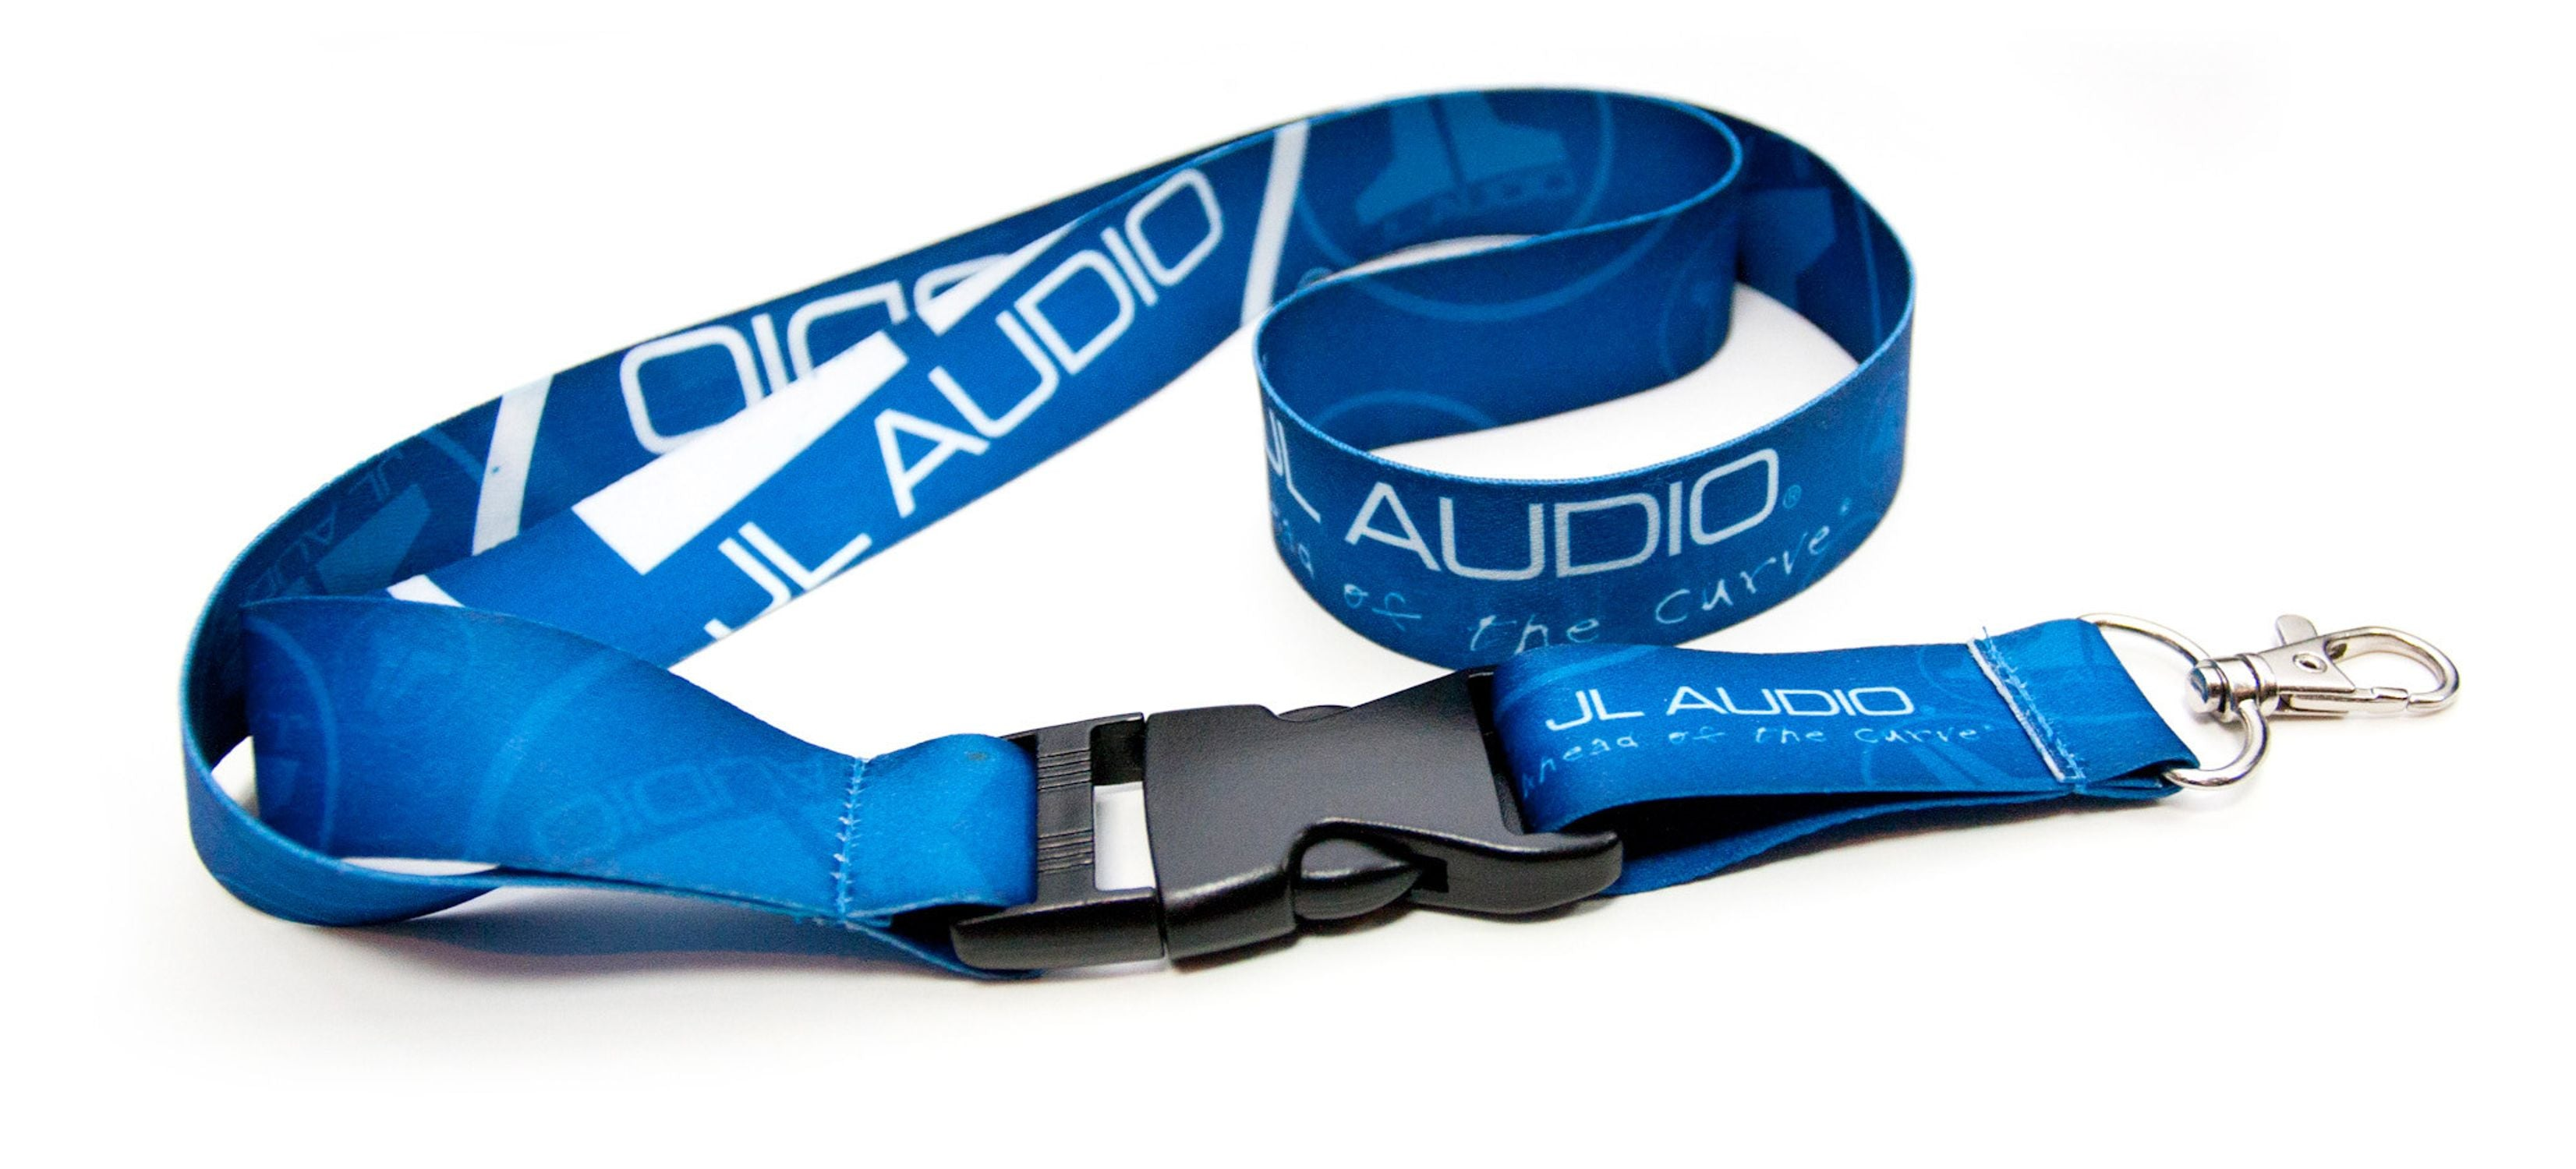 Blue Logo Lanyard showing Clip Connected